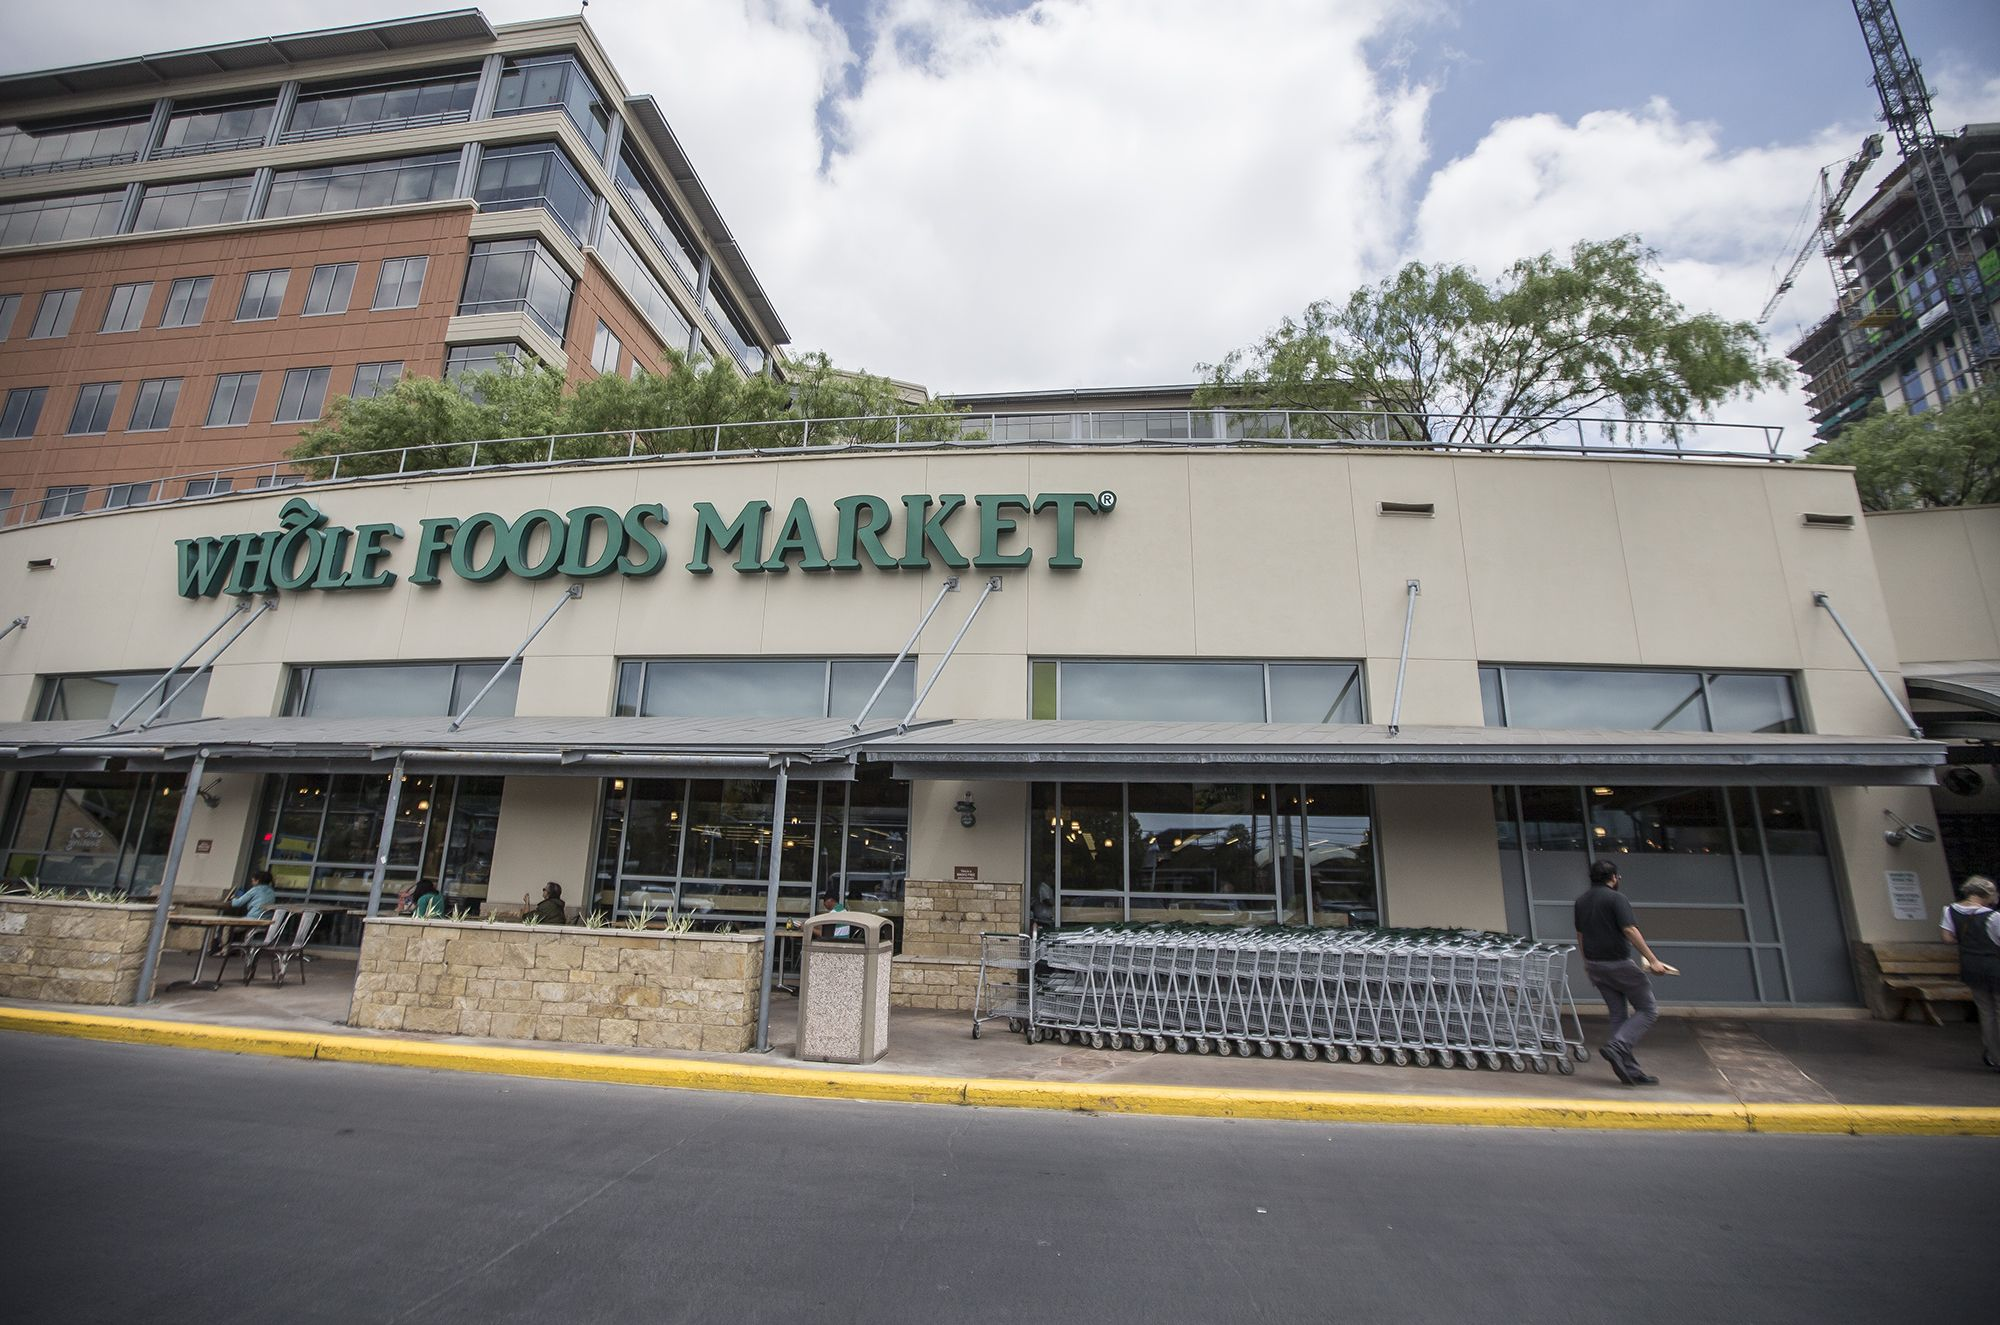 Austinbased Whole Foods Market has partnered with two